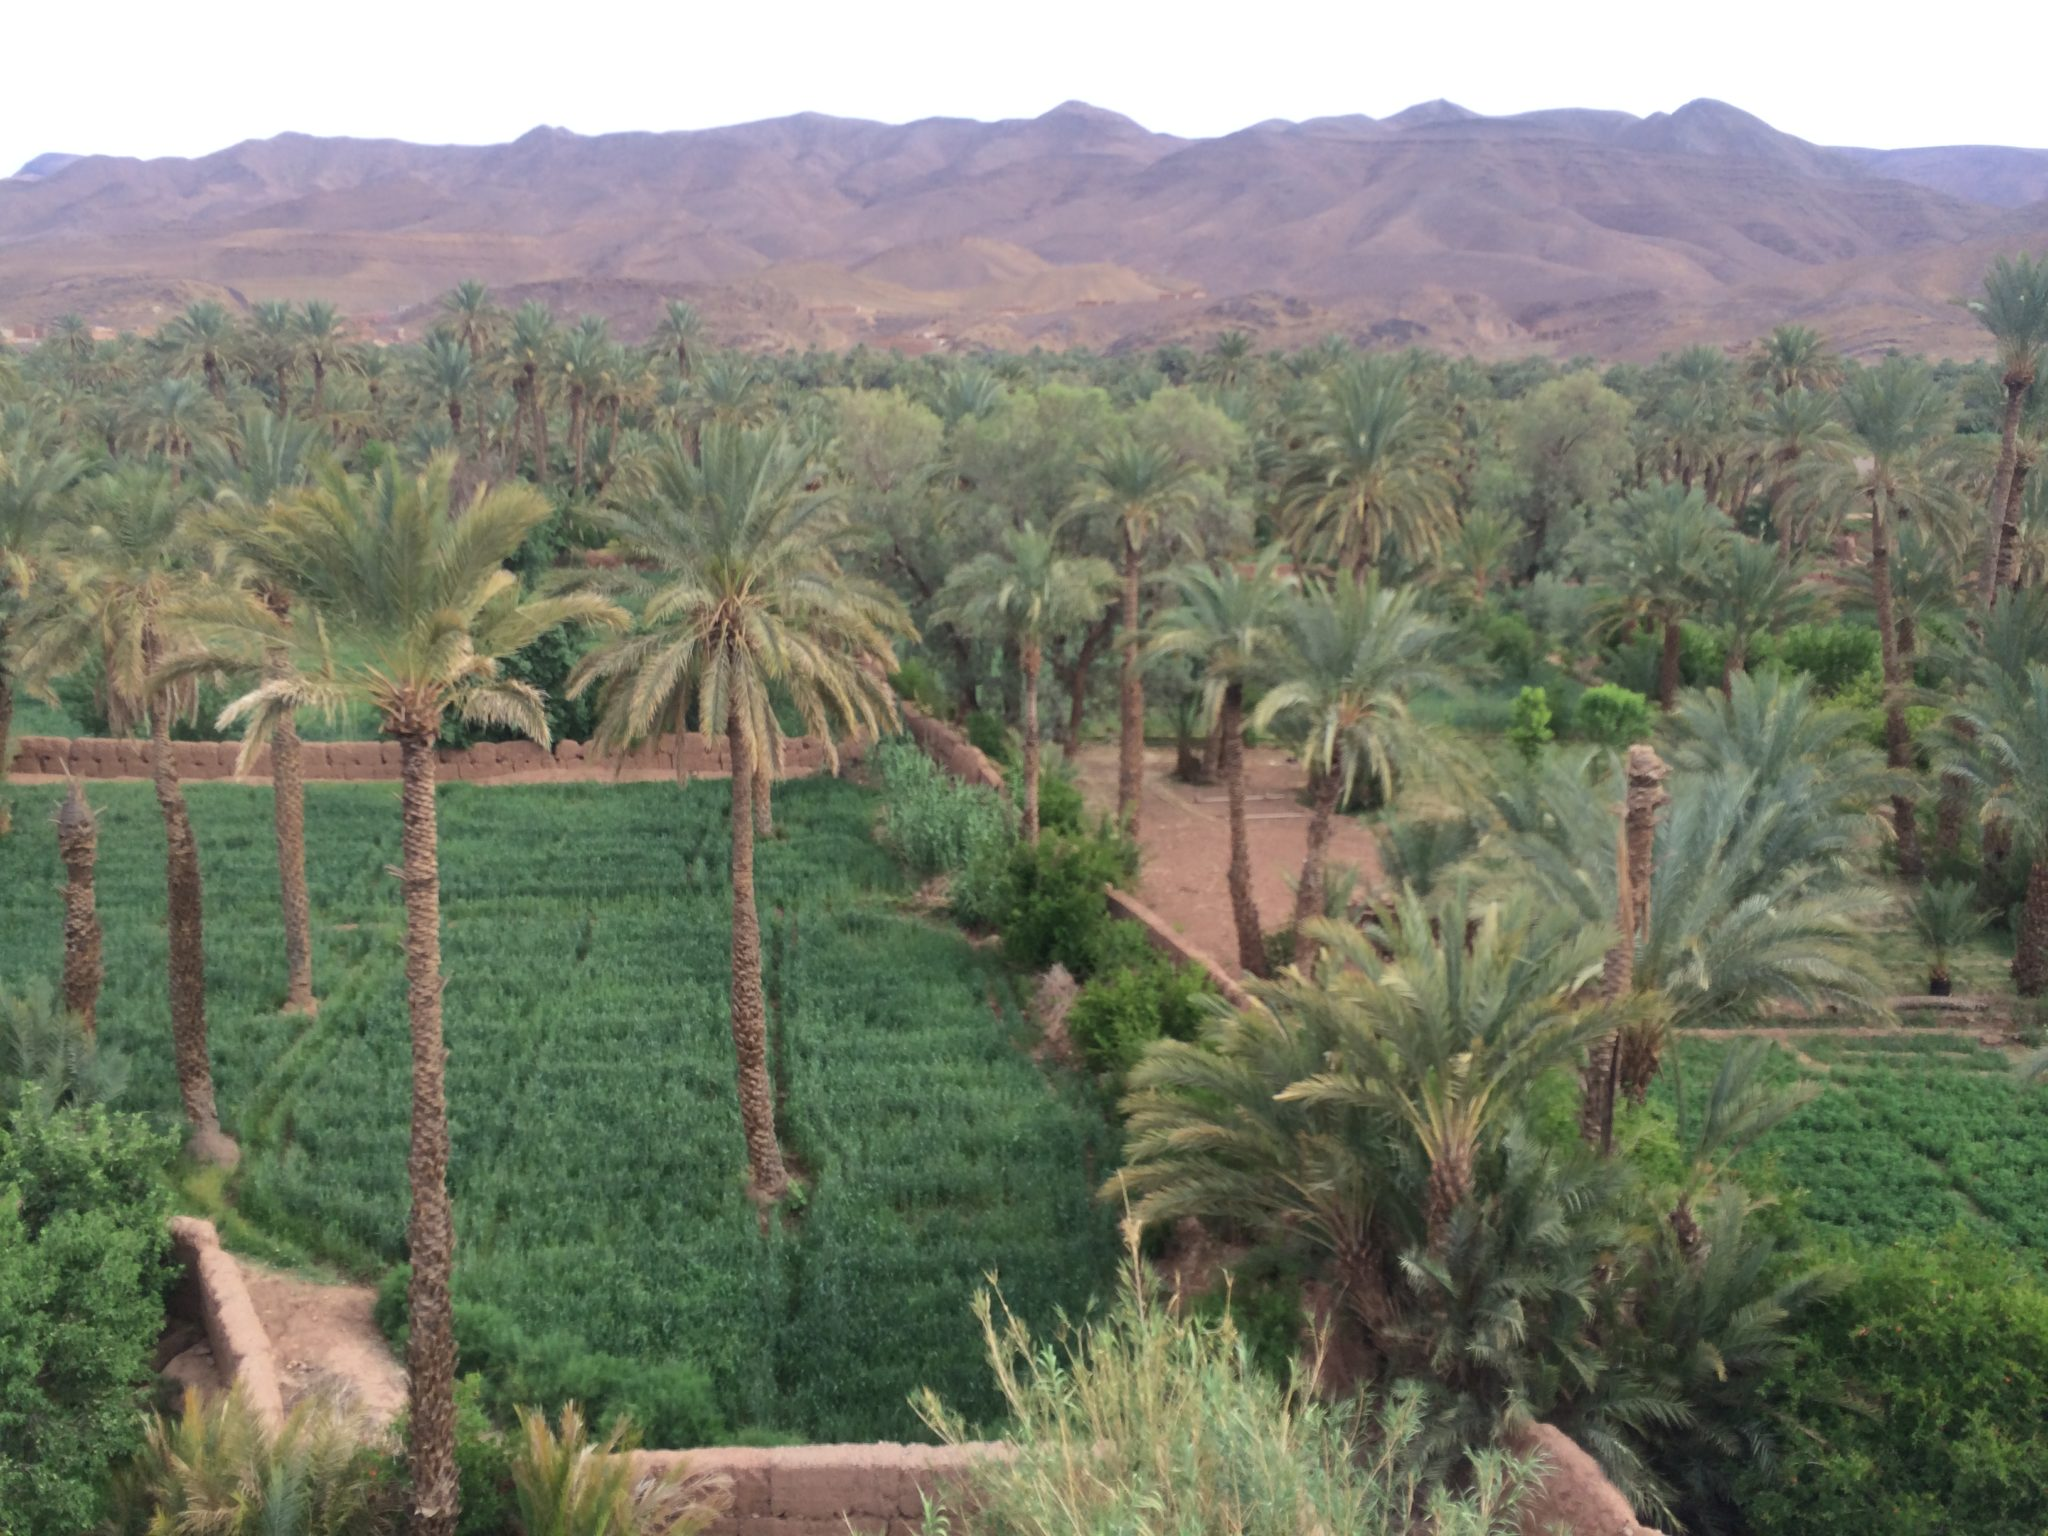 Dra Valley, Morocco; Lush green palm groves and wheat against backdrop of mountains